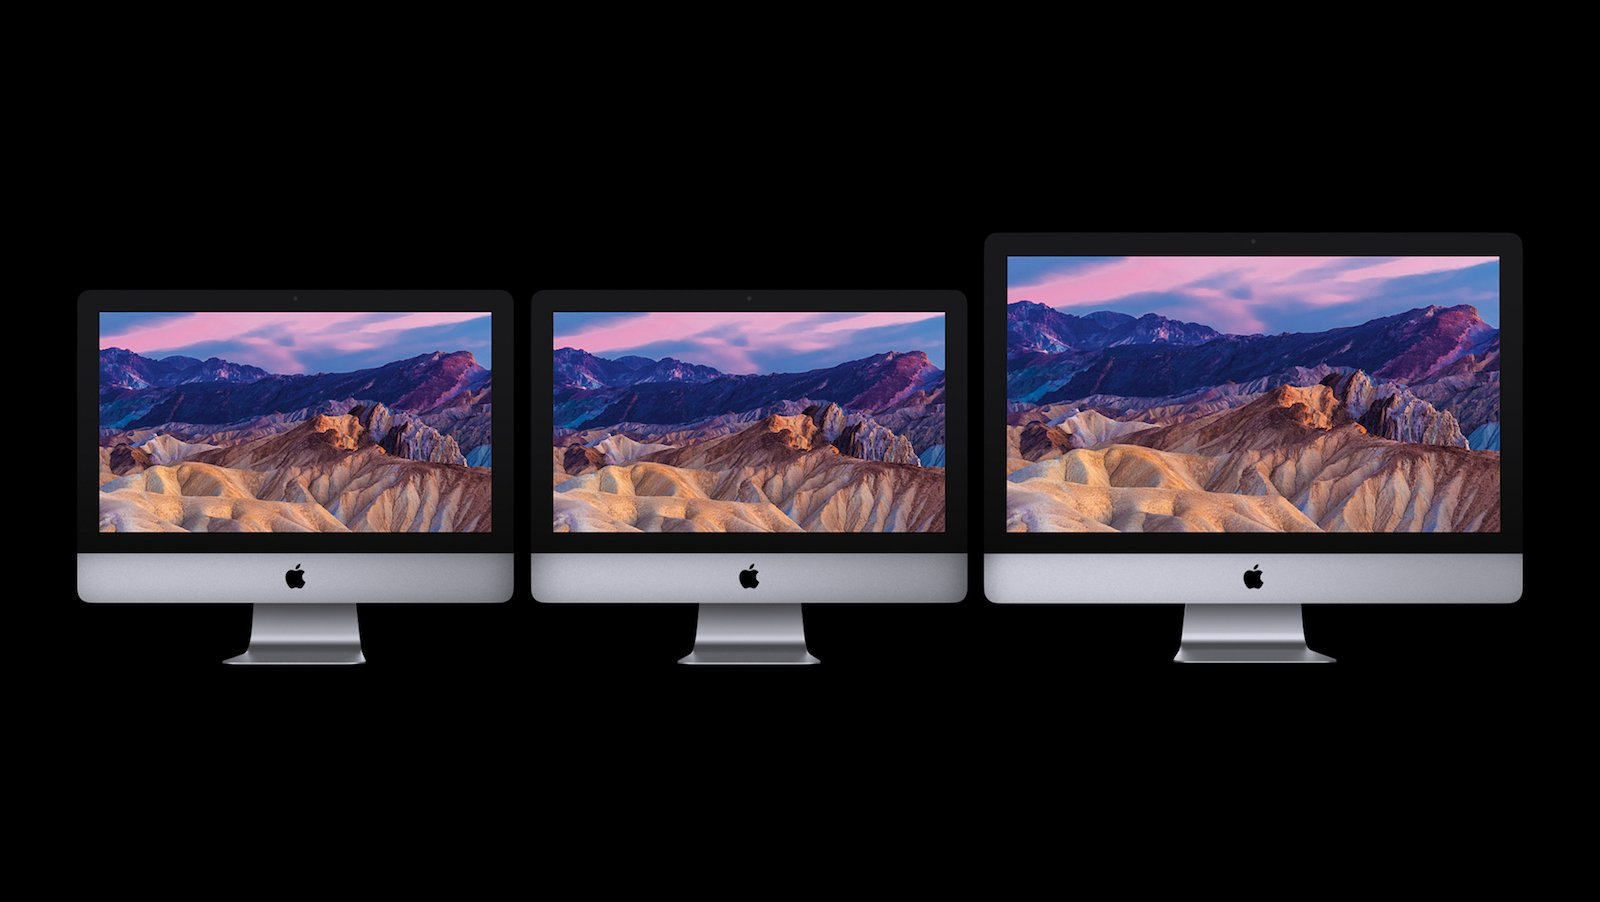 Apple Updates Imac Lineup With Big Graphics Boost And